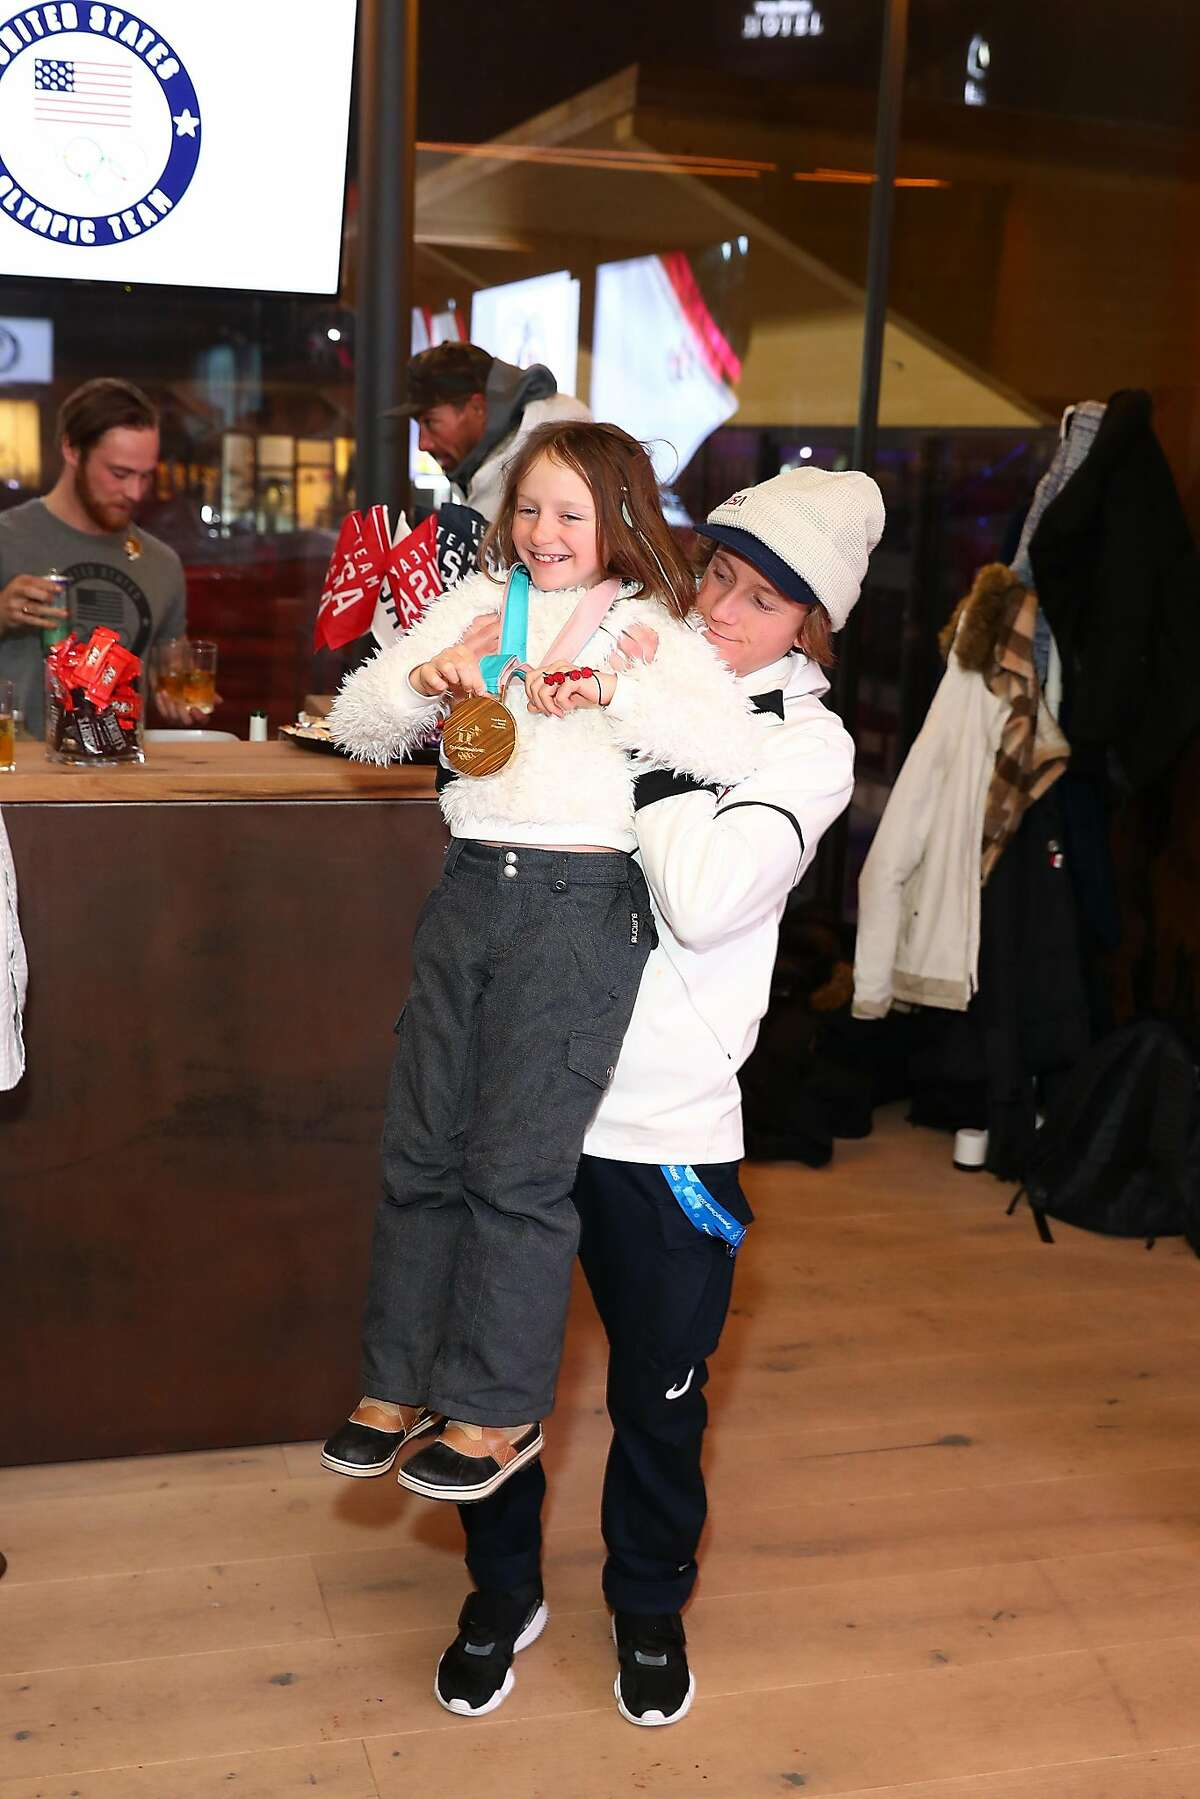 U.S. Olympian Red Gerard greets his family to show them his Gold Medal at the USA House at the PyeongChang 2018 Winter Olympic Games on February 11, 2018 in Pyeongchang-gun, South Korea. (Photo by Joe Scarnici/Getty Images for USOC)